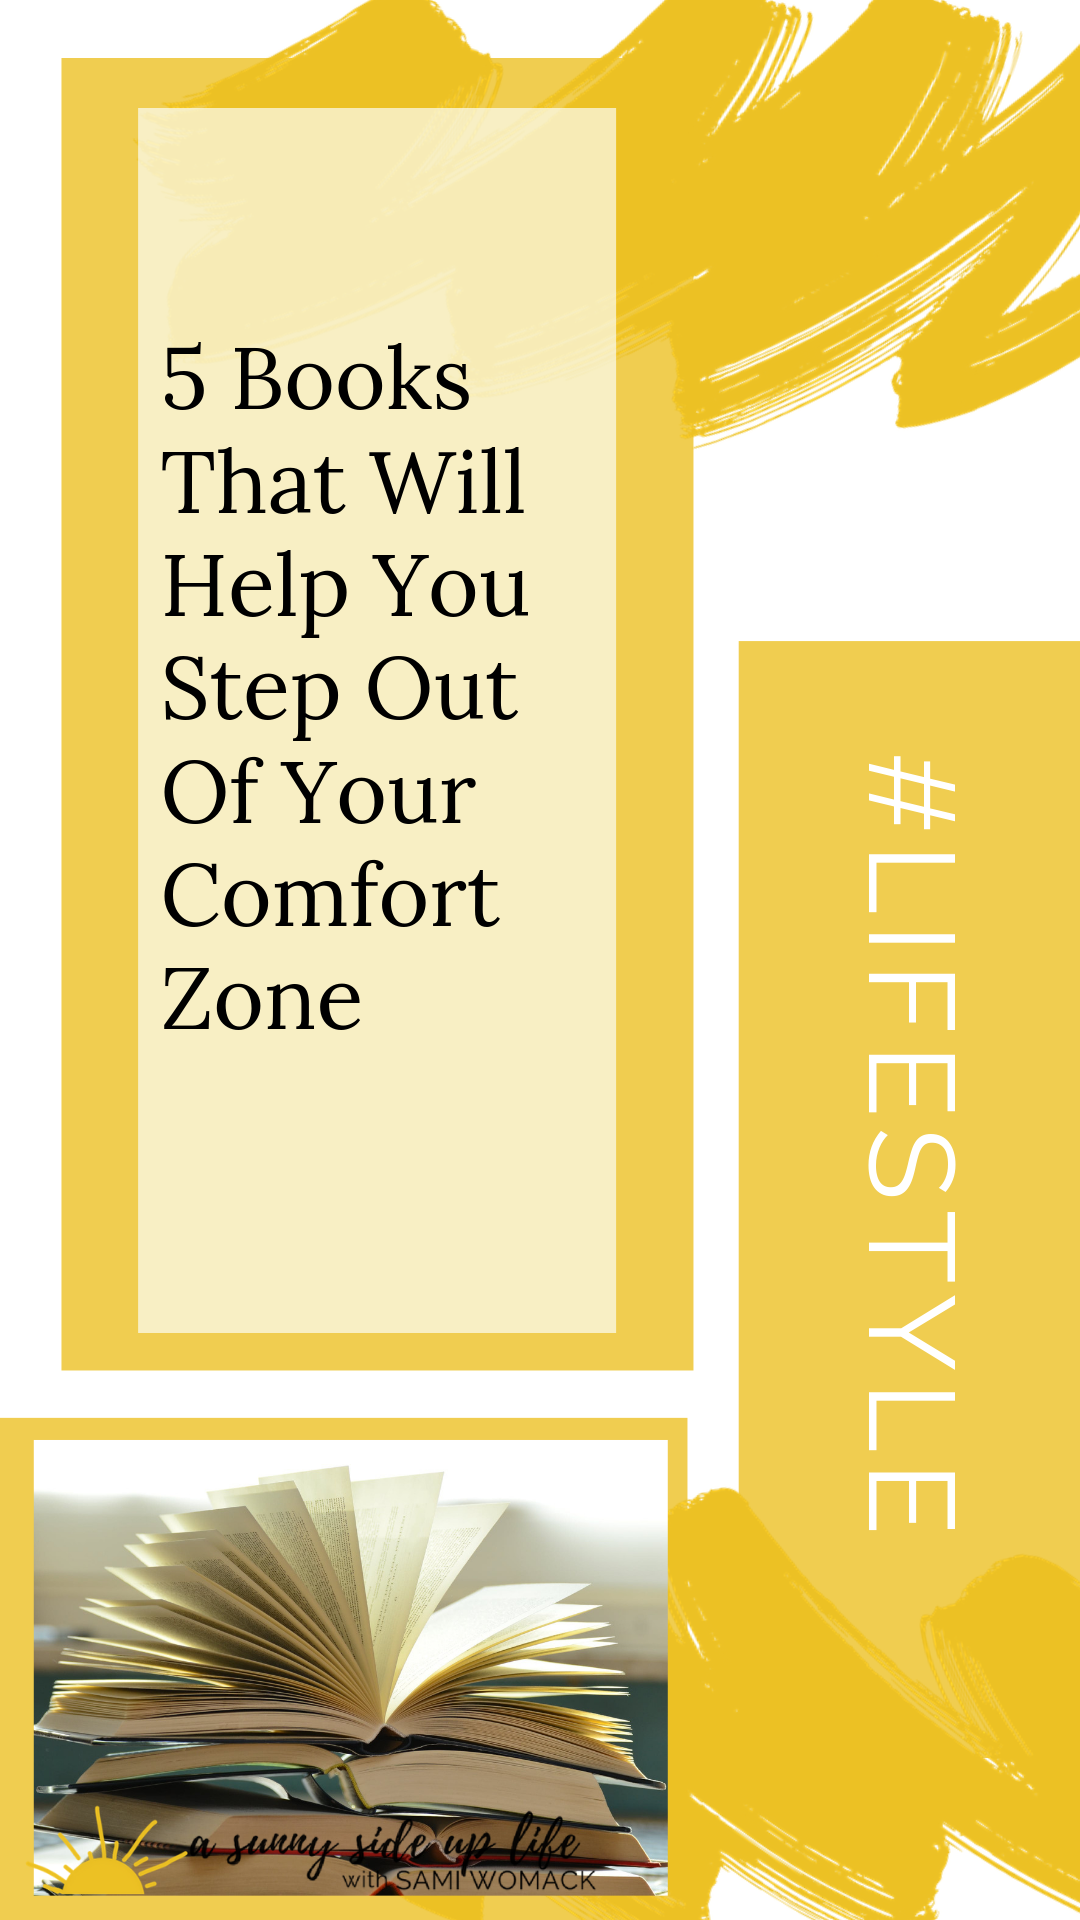 books | audible | reading | personal development | book suggestions for women | how to break out of your comfort zone